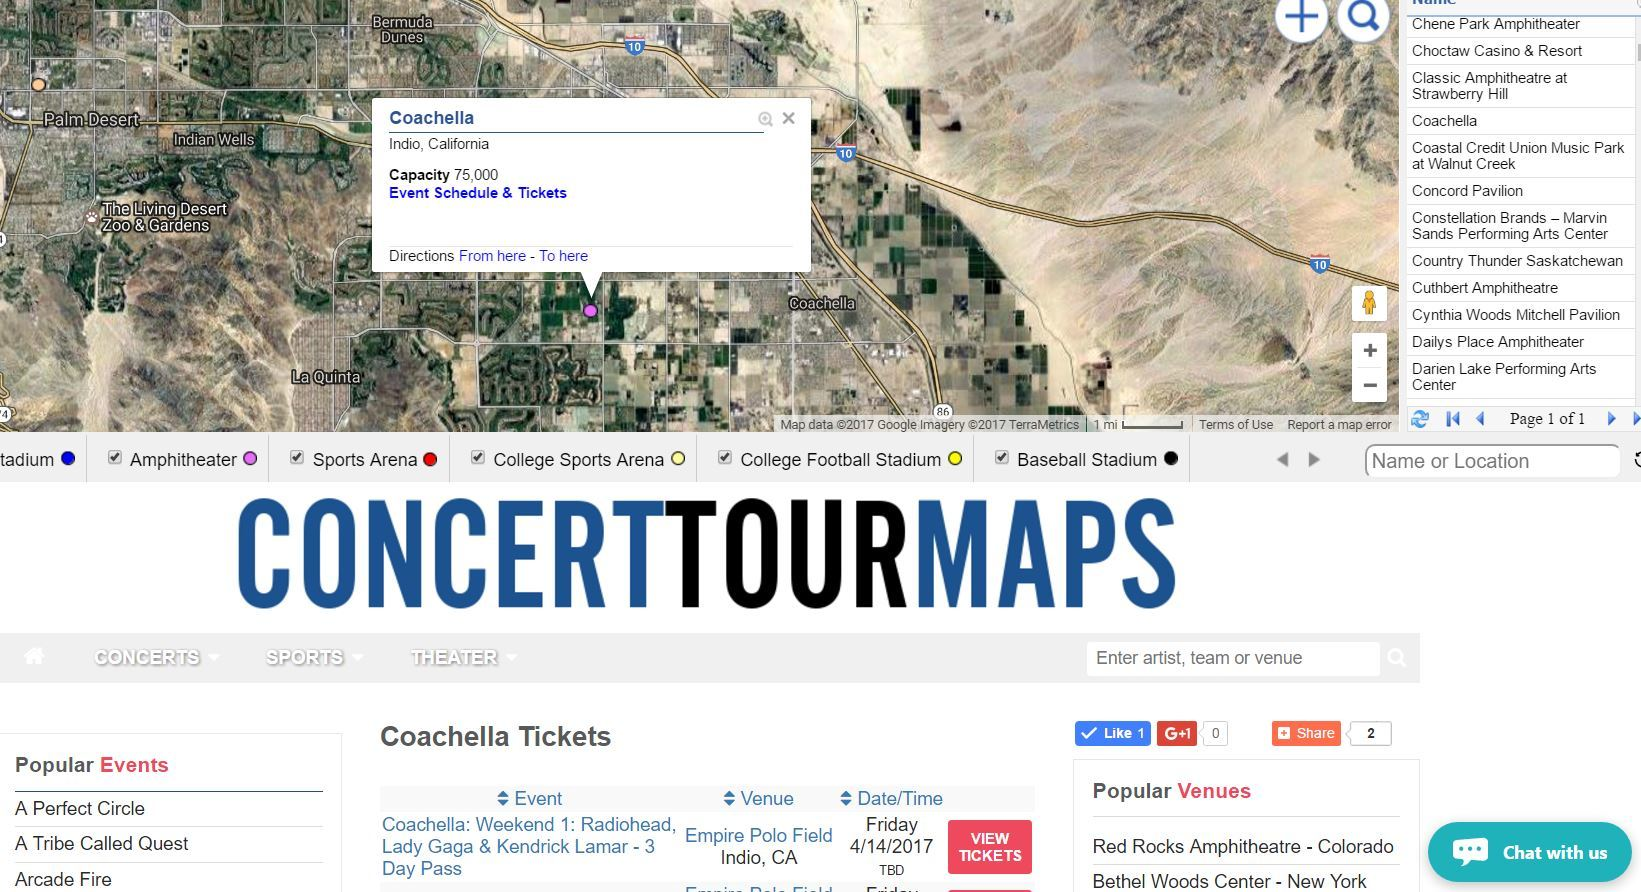 Map venue database of theaters, amphitheaters, stadiums, sports arena, concert halls and event centers.